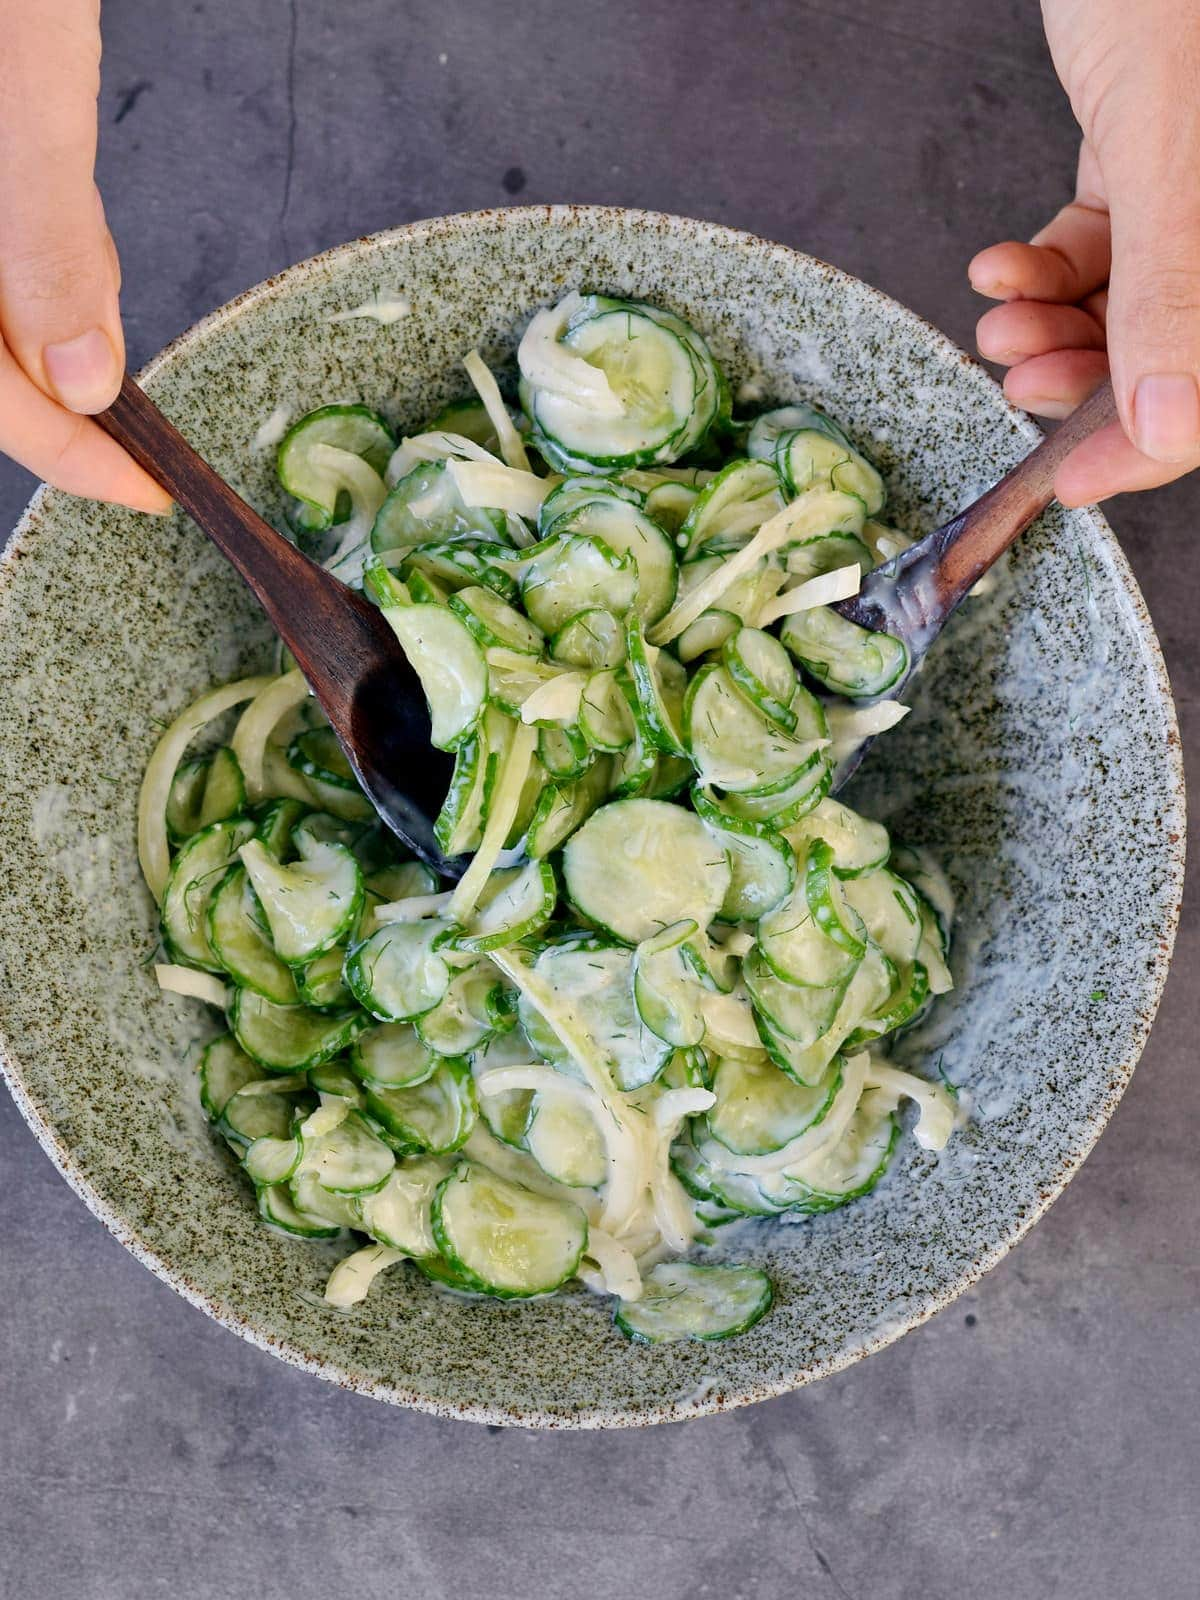 Stirring sliced cucumbers and dill dressing in a bowl